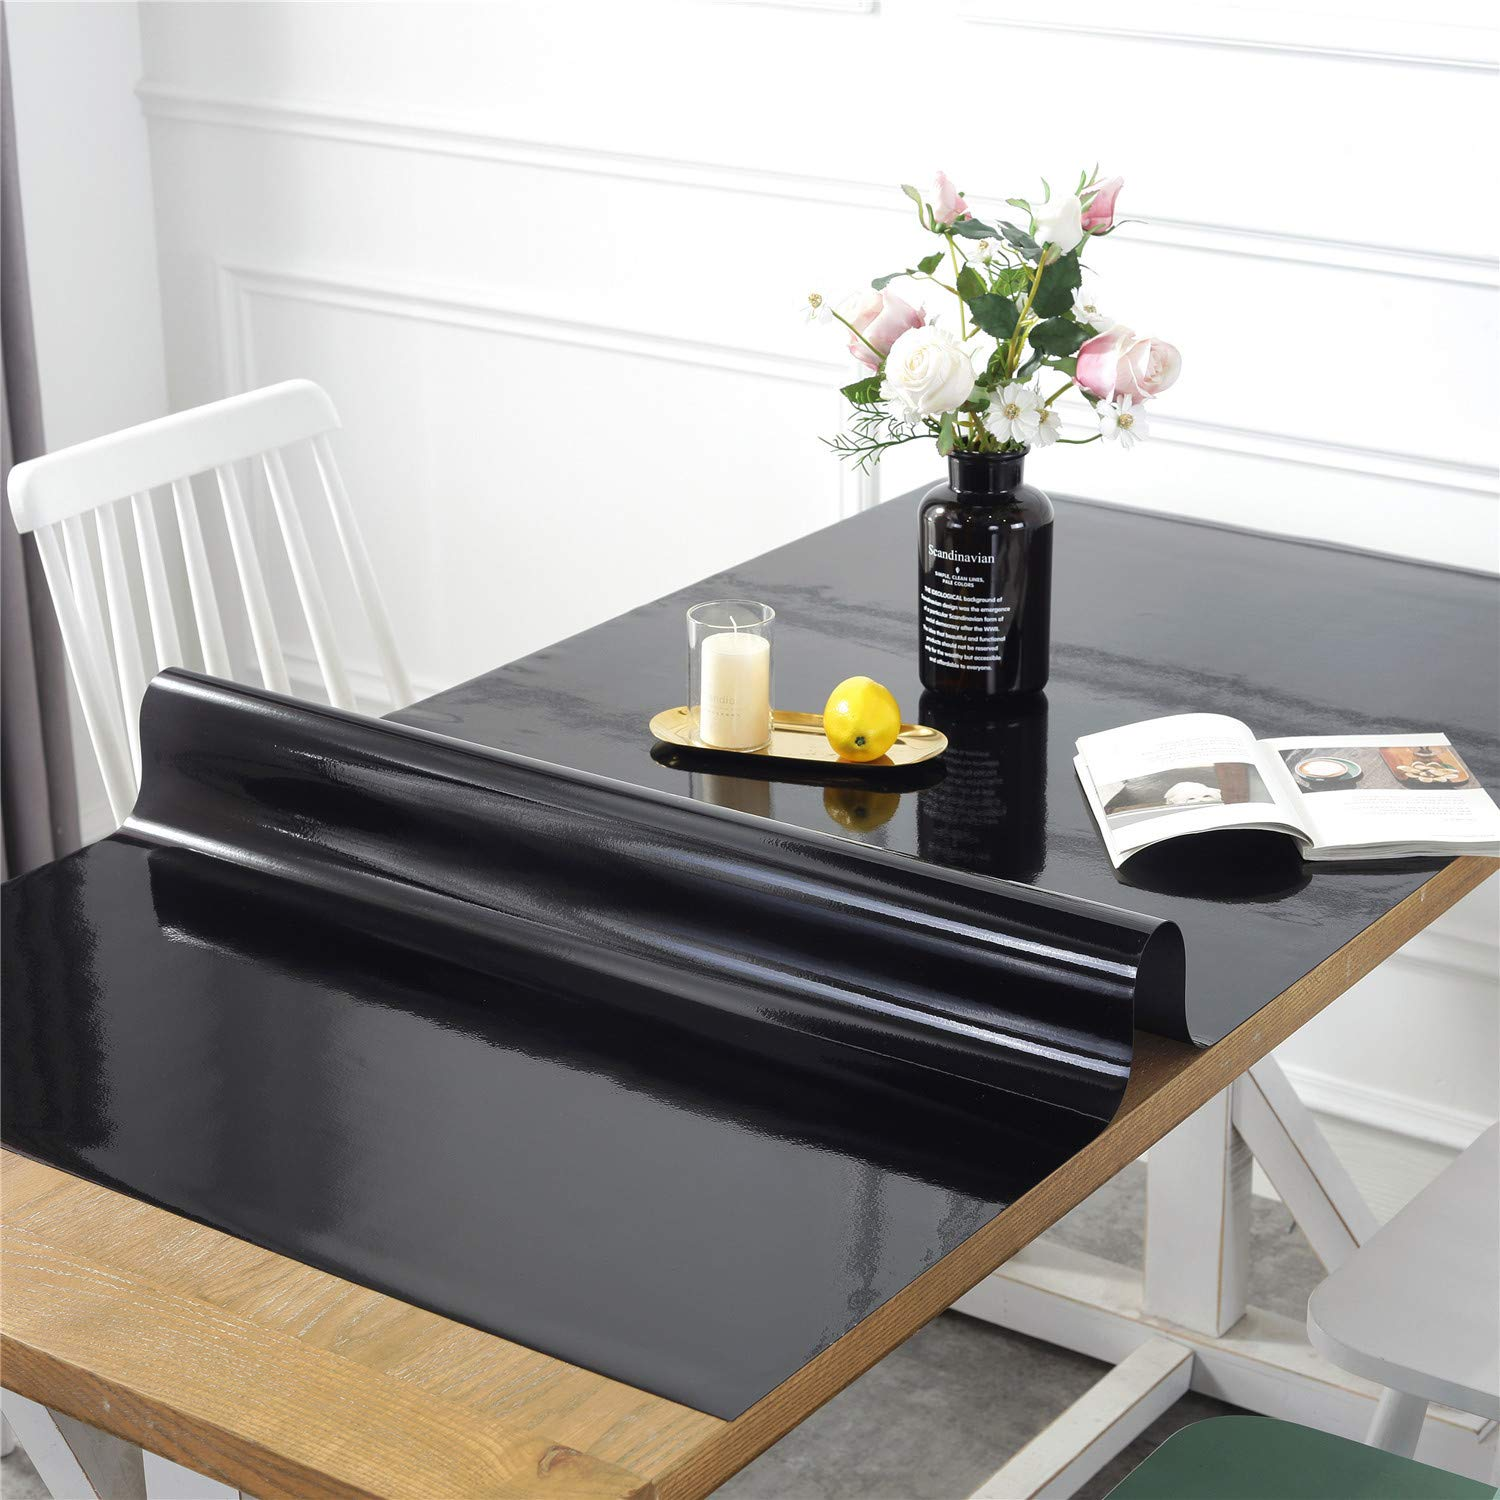 OstepDecor Custom Black Table Protector for Dining Room Table - 60 x 36 Inch Rectangular Plastic Protective Table Pad Kitchen Wood Grain Vinyl Tablecloth Cover by OstepDecor